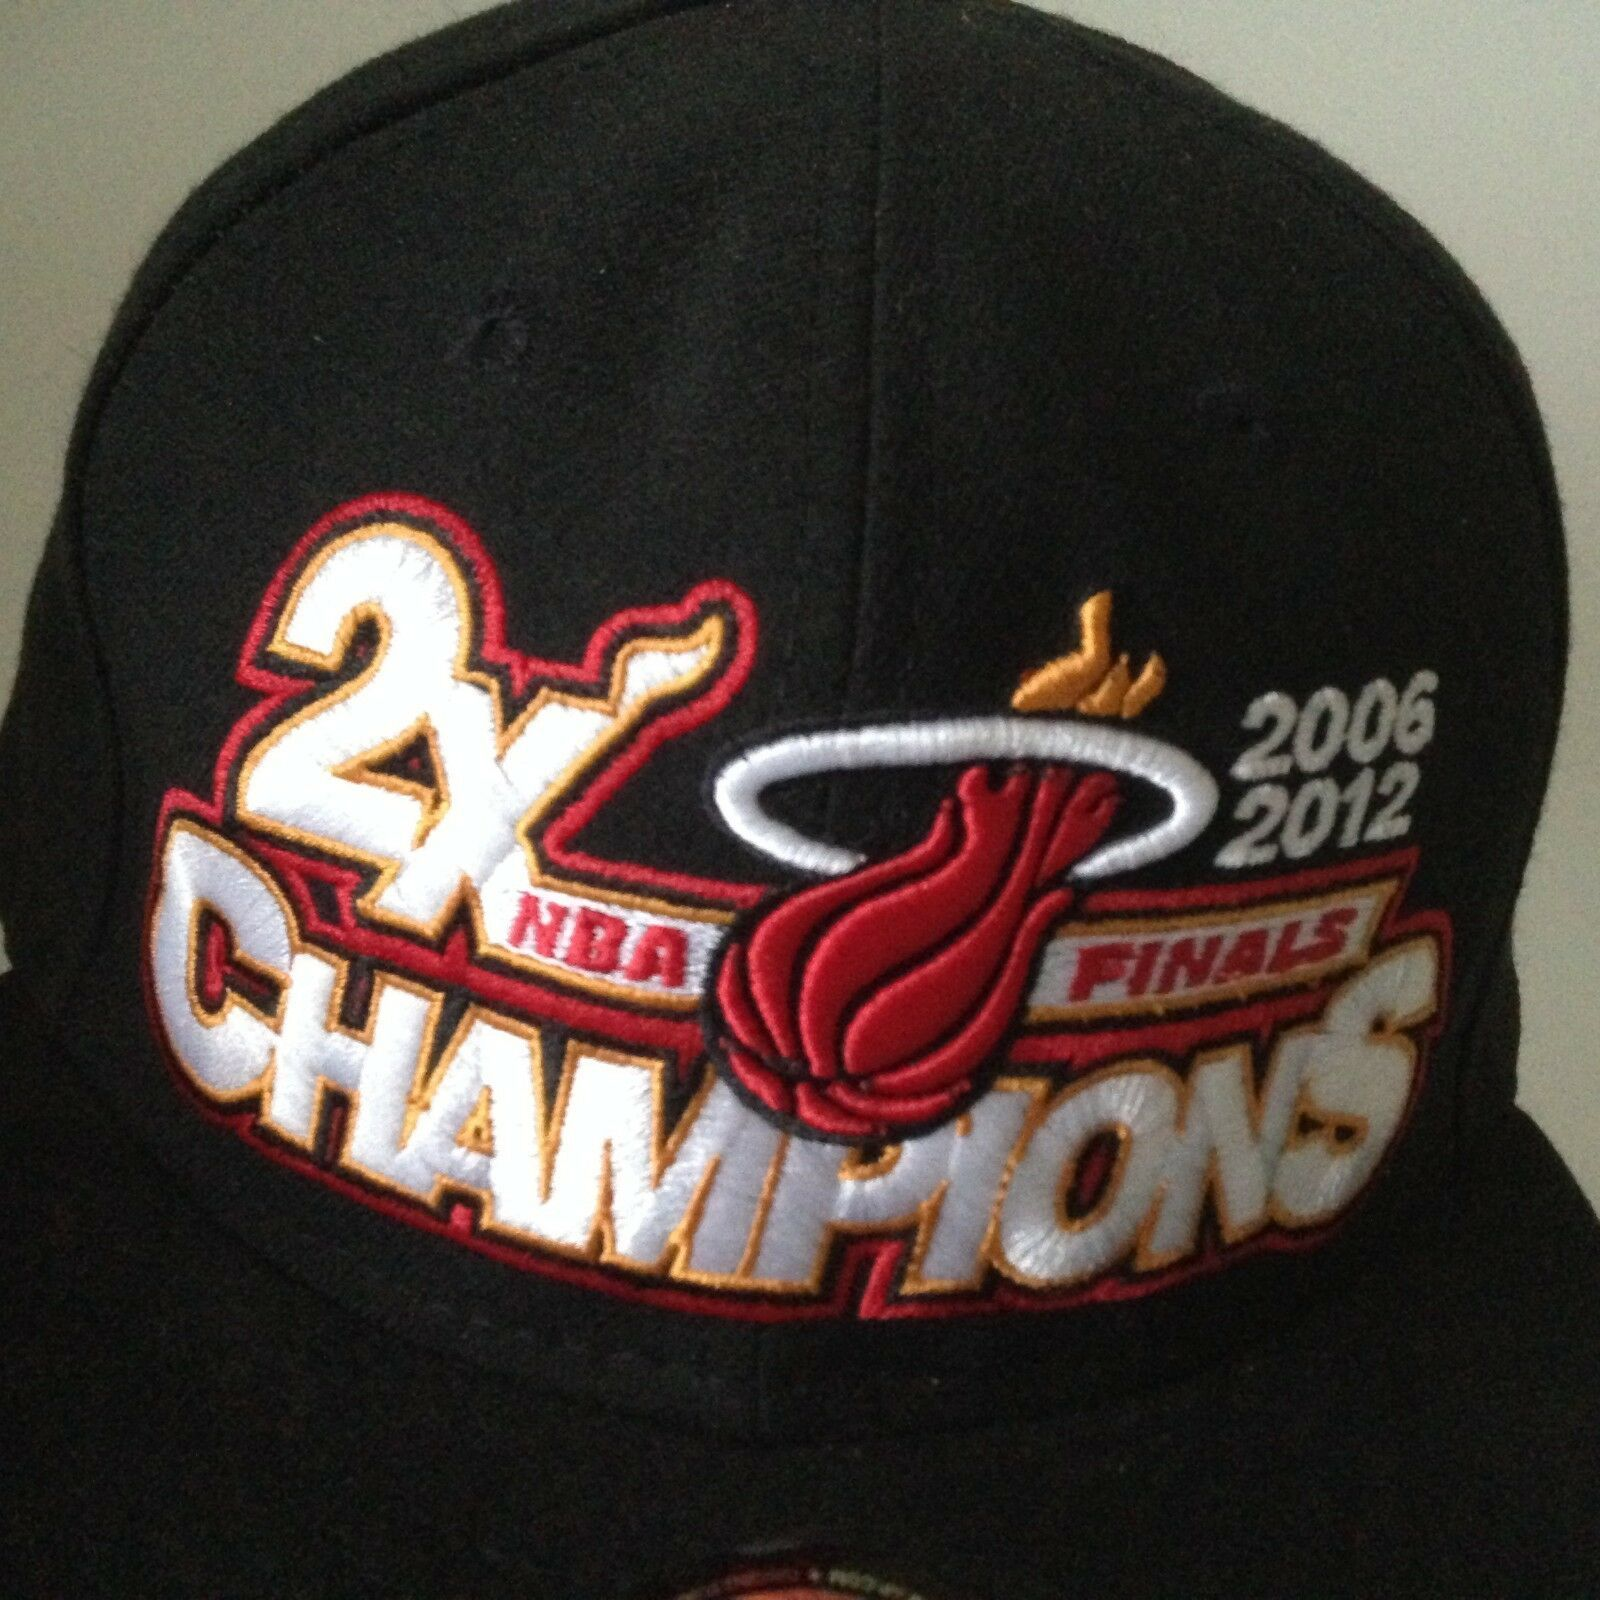 Miami Heat NBA Fitted Cap Hat Finals 2006/2012 Champions New Era NWT Size 7.5